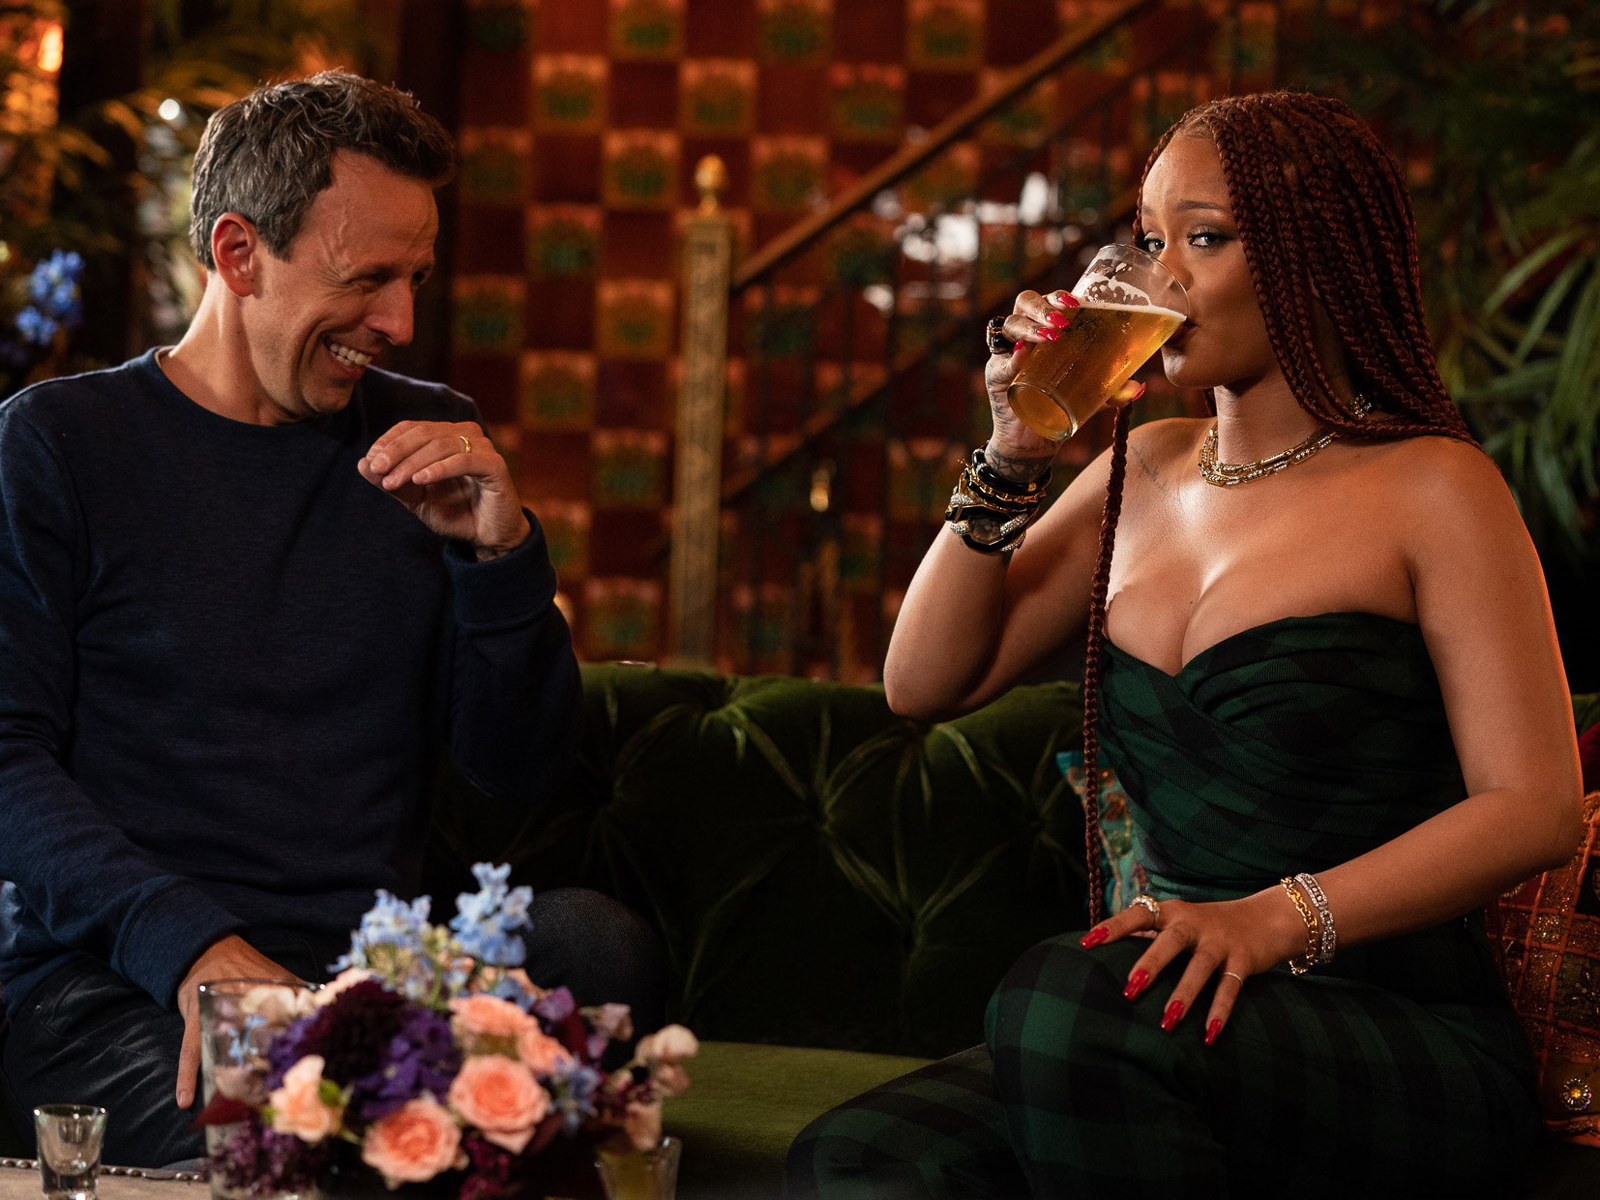 Watch Seth Meyers Make Rihanna Cocktails Inspired By Her Songs